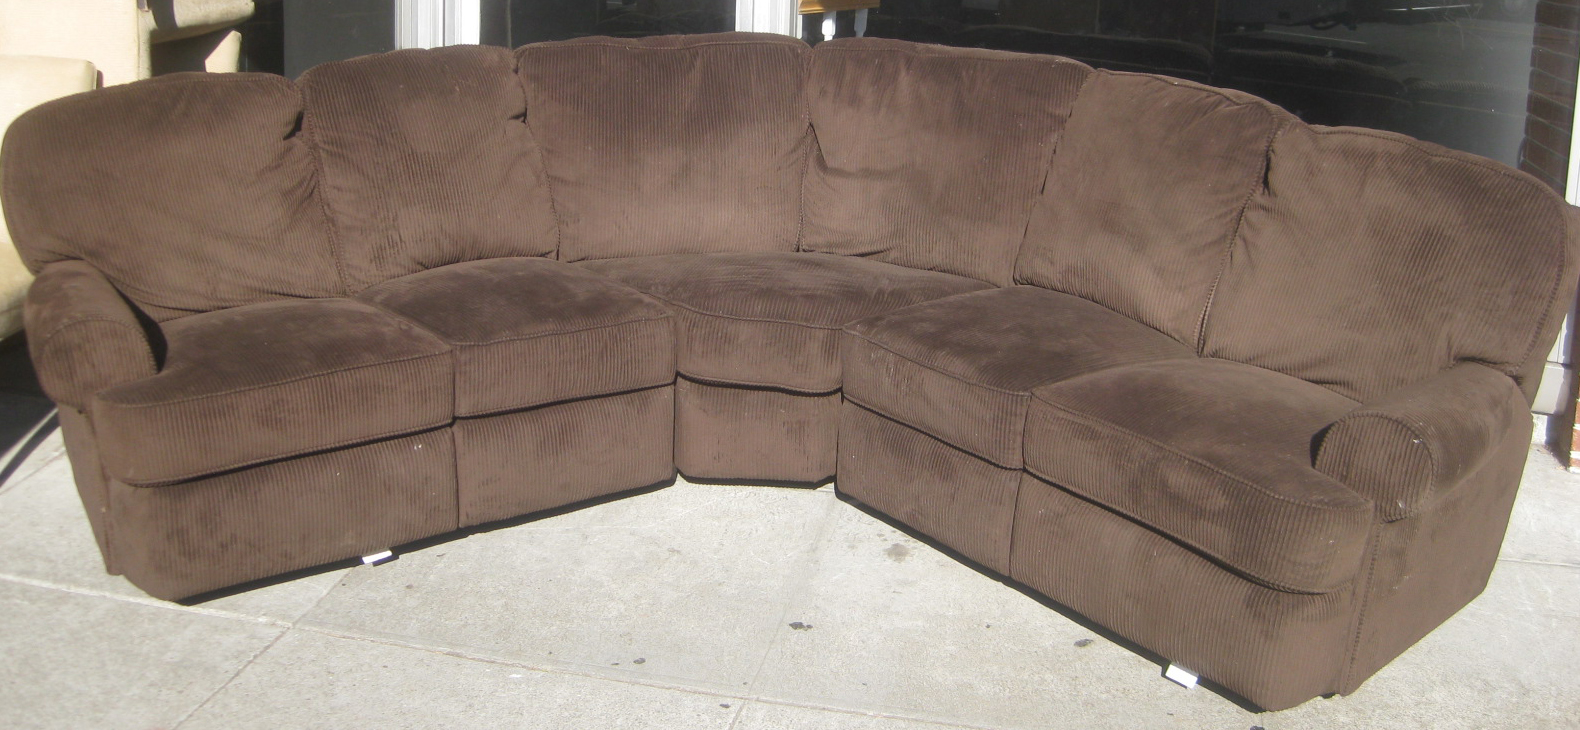 Uhuru furniture collectibles sold corduroy sectional for Sectional sofa with reclining ends